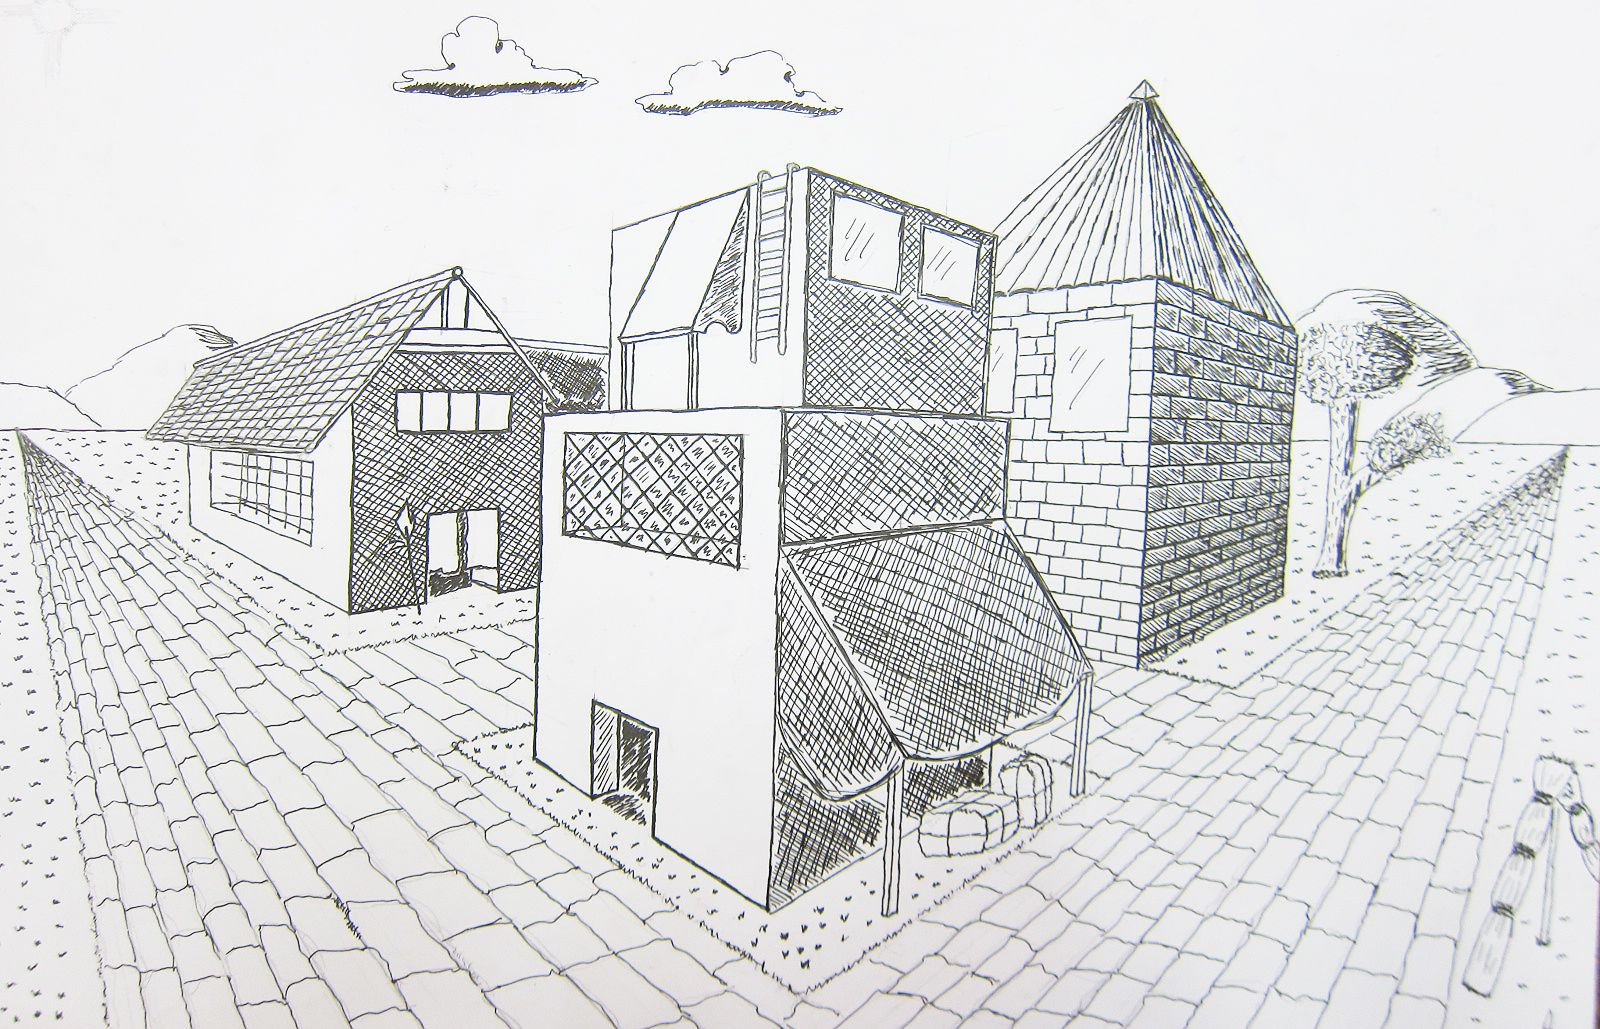 Perspective Drawings Of Buildings upper school art (grades 7-12): two point perspective building